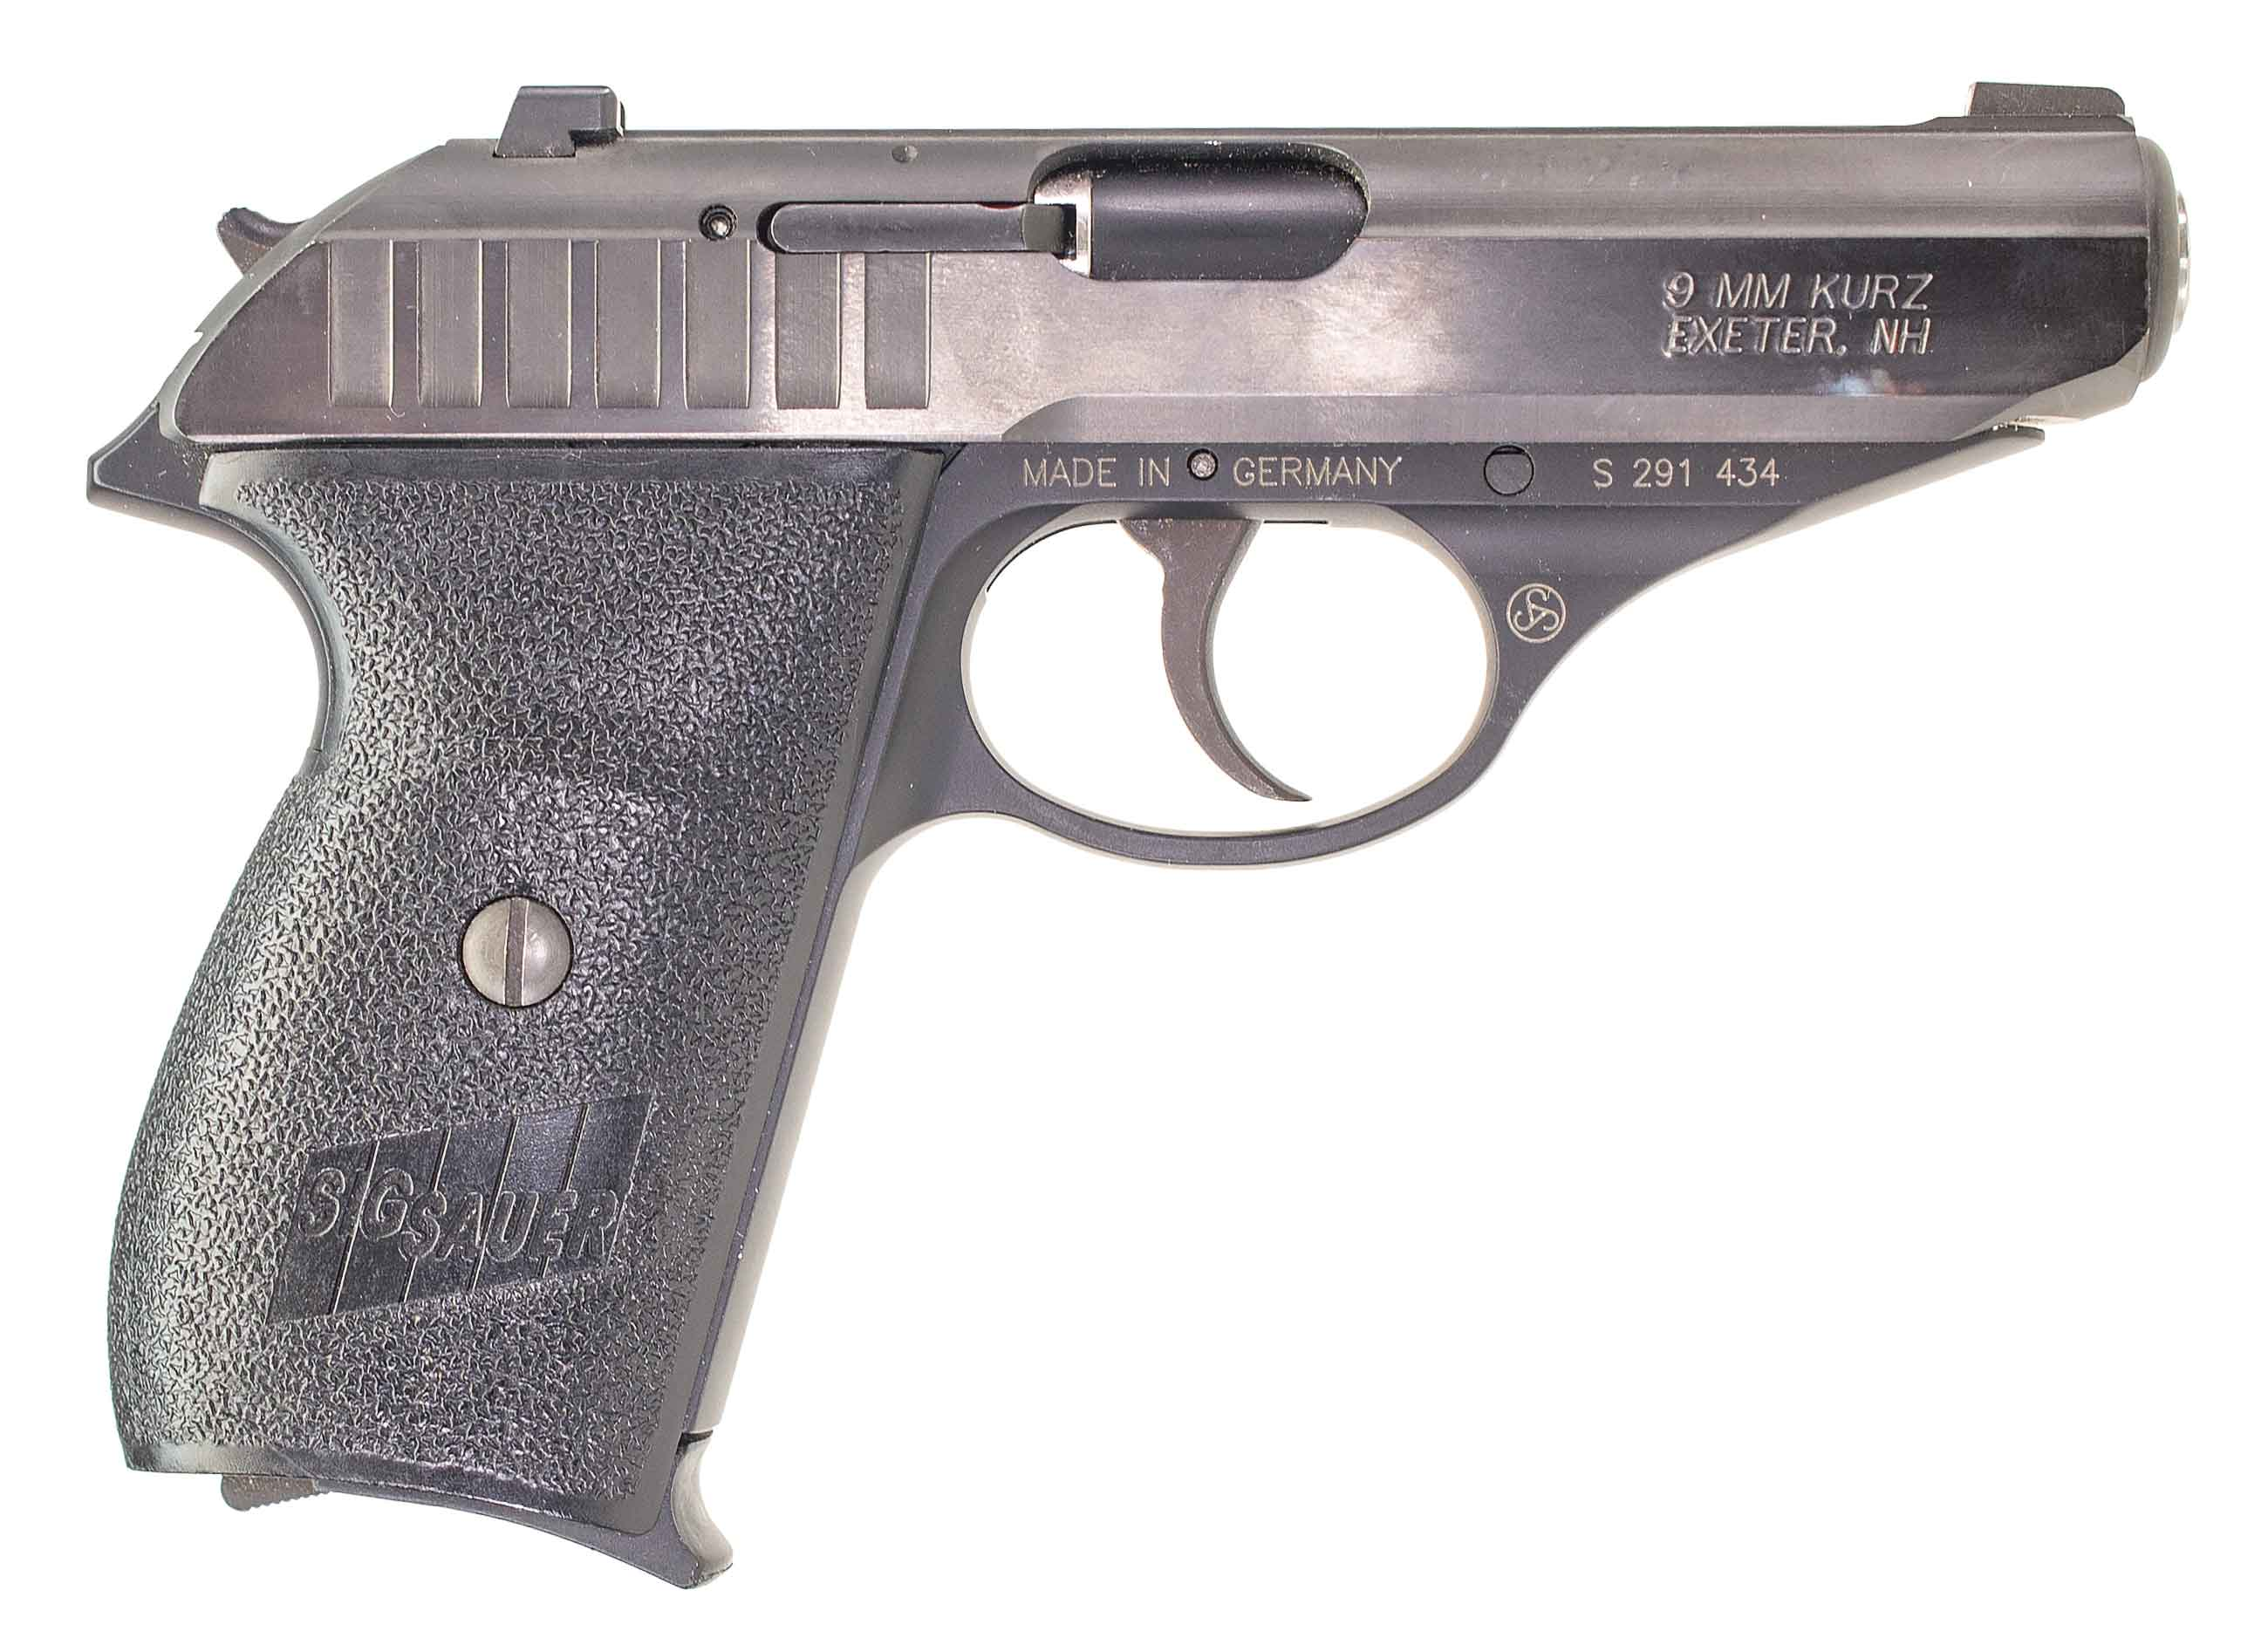 sig sauer p232 auction id 9412466 end time oct 02 2017 21 50